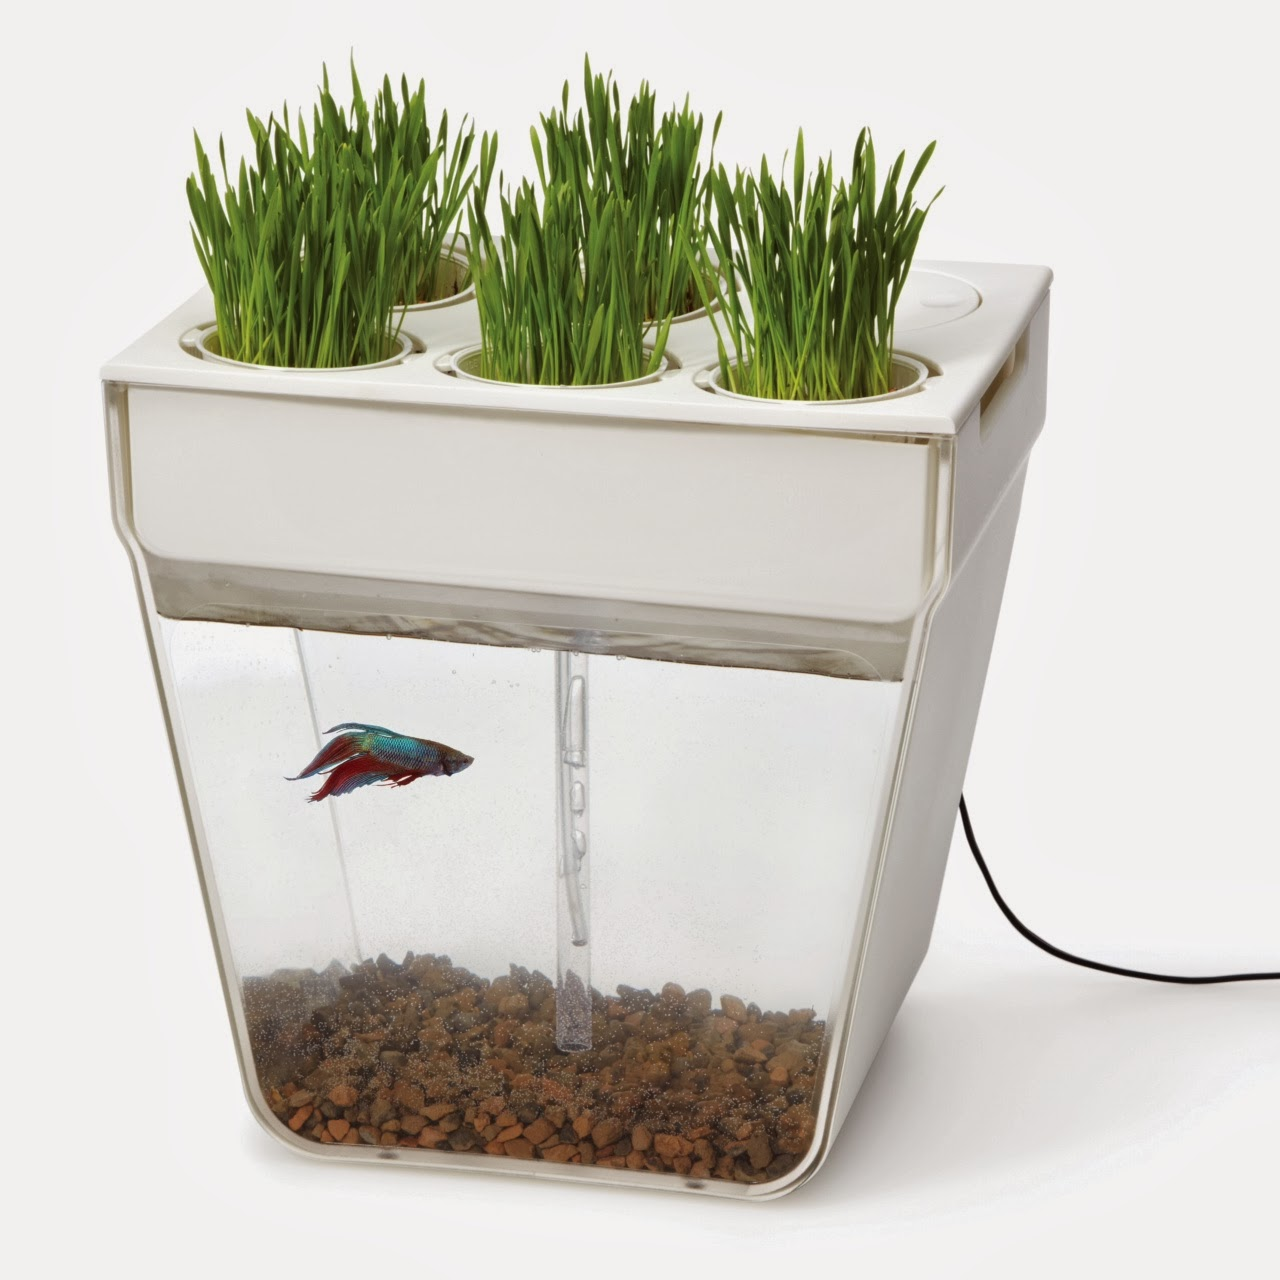 Diy fish tanks joy studio design gallery best design for Betta fish bowl ideas